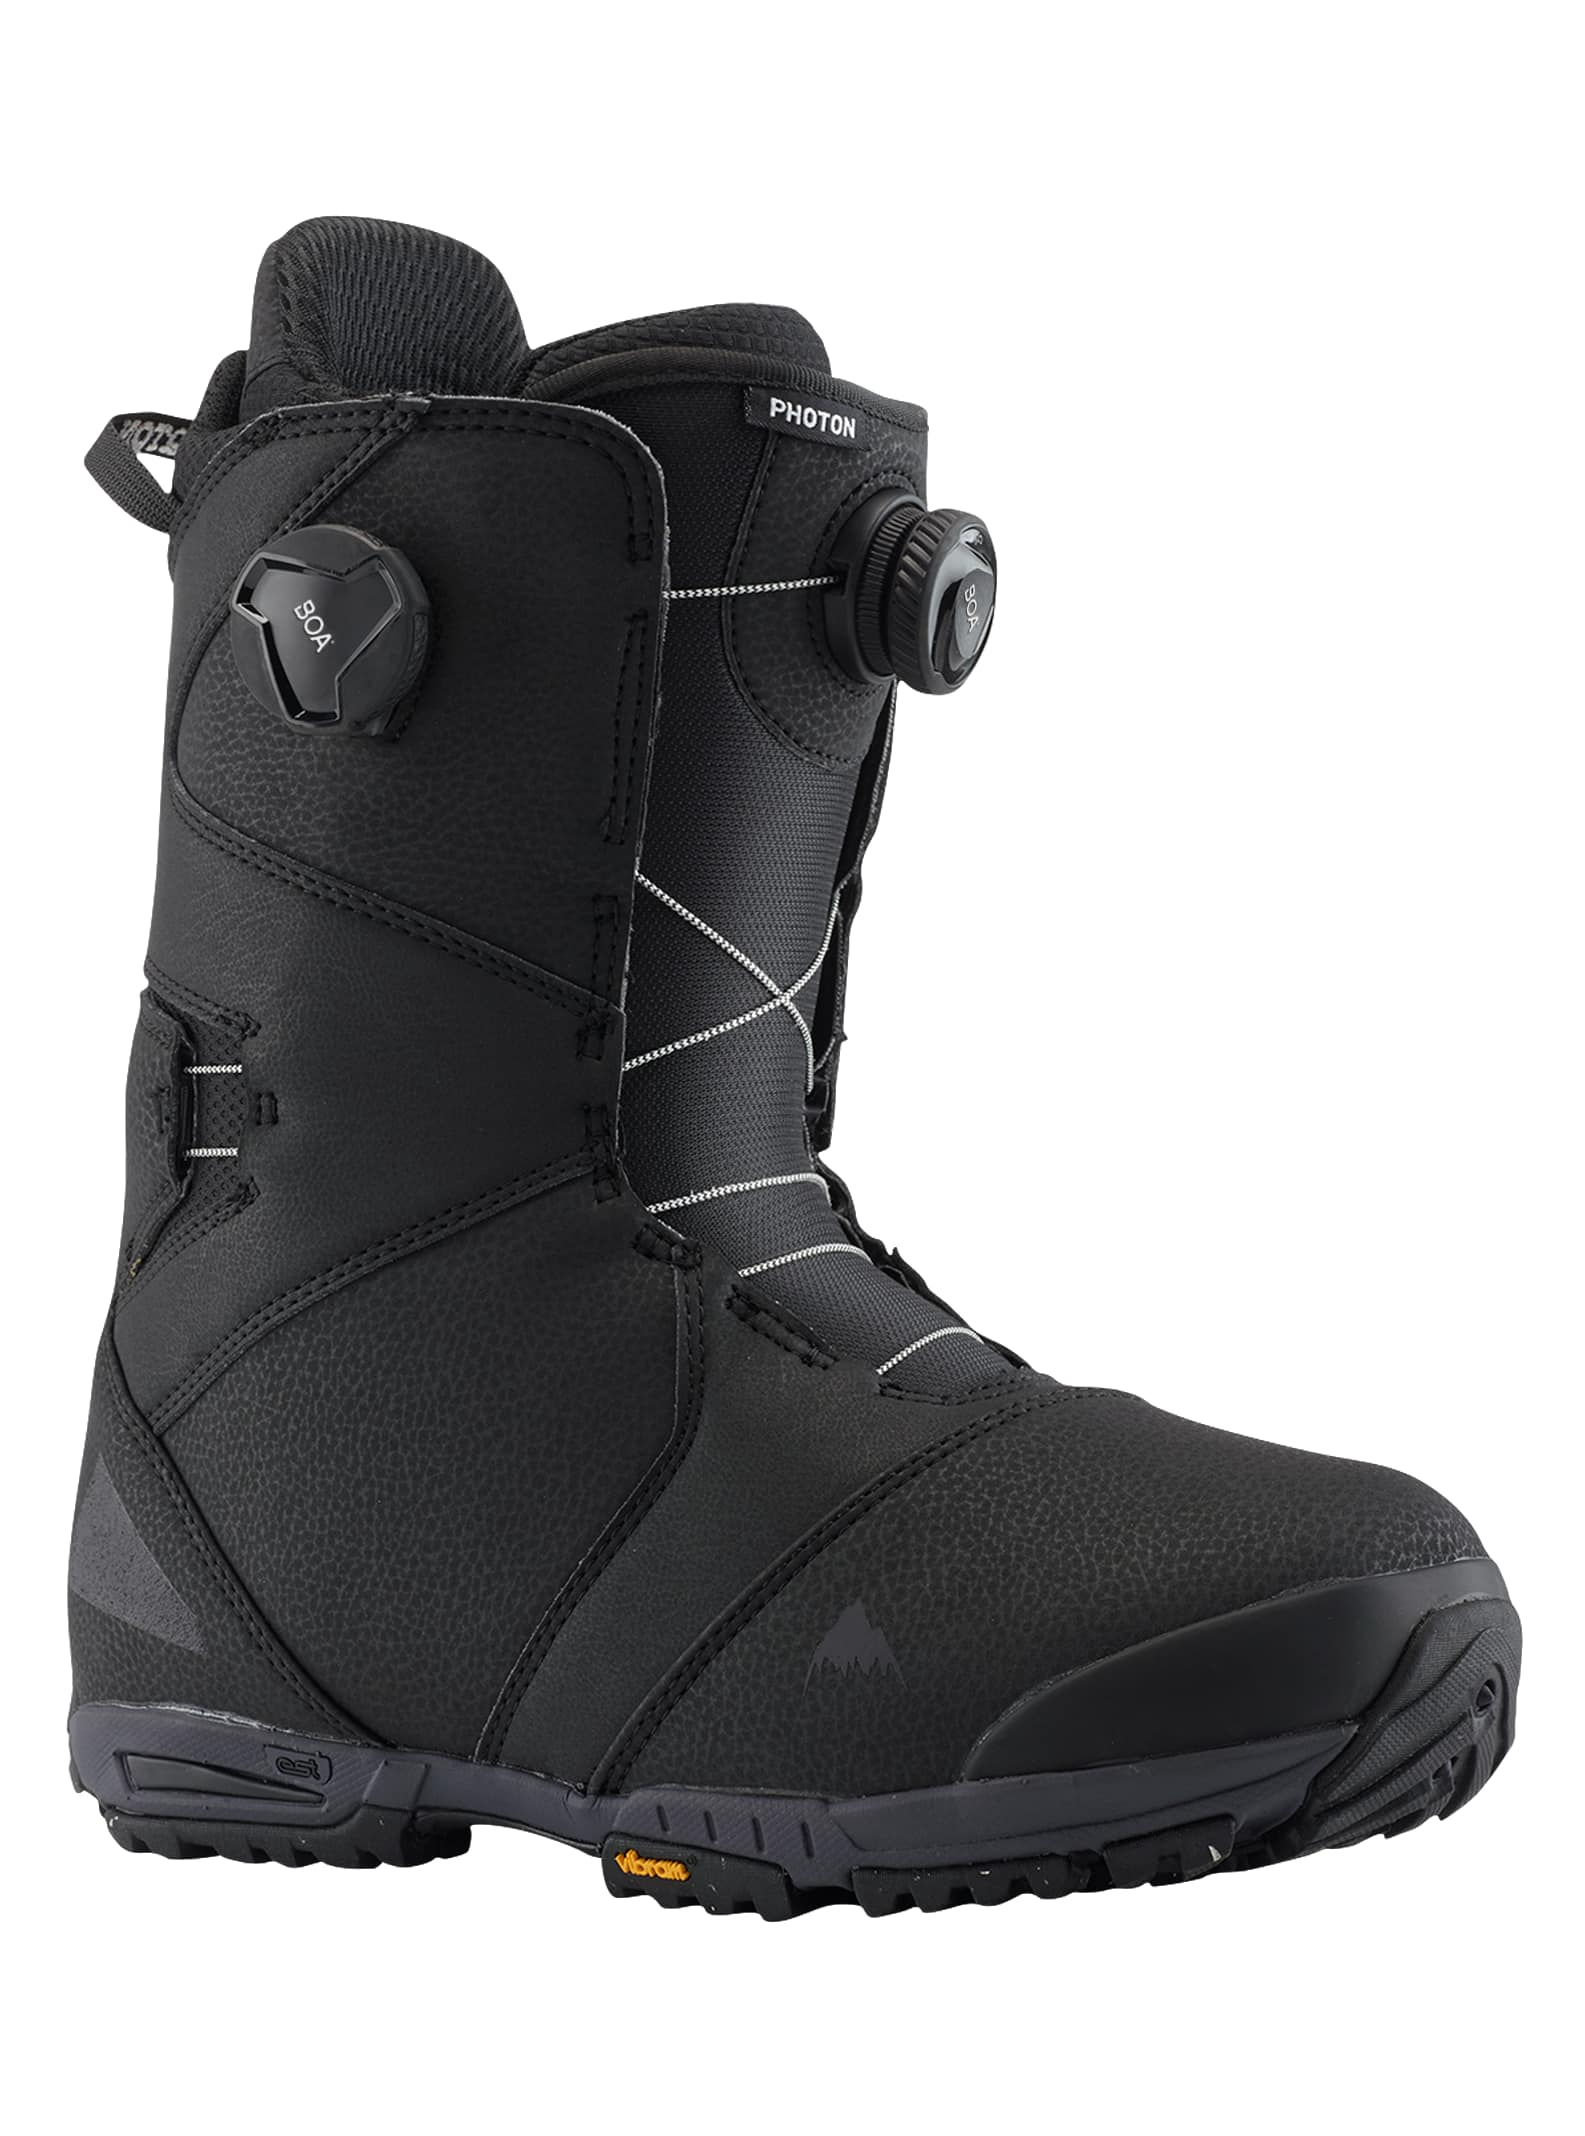 Men's Burton Photon Boa® Snowboard Boot